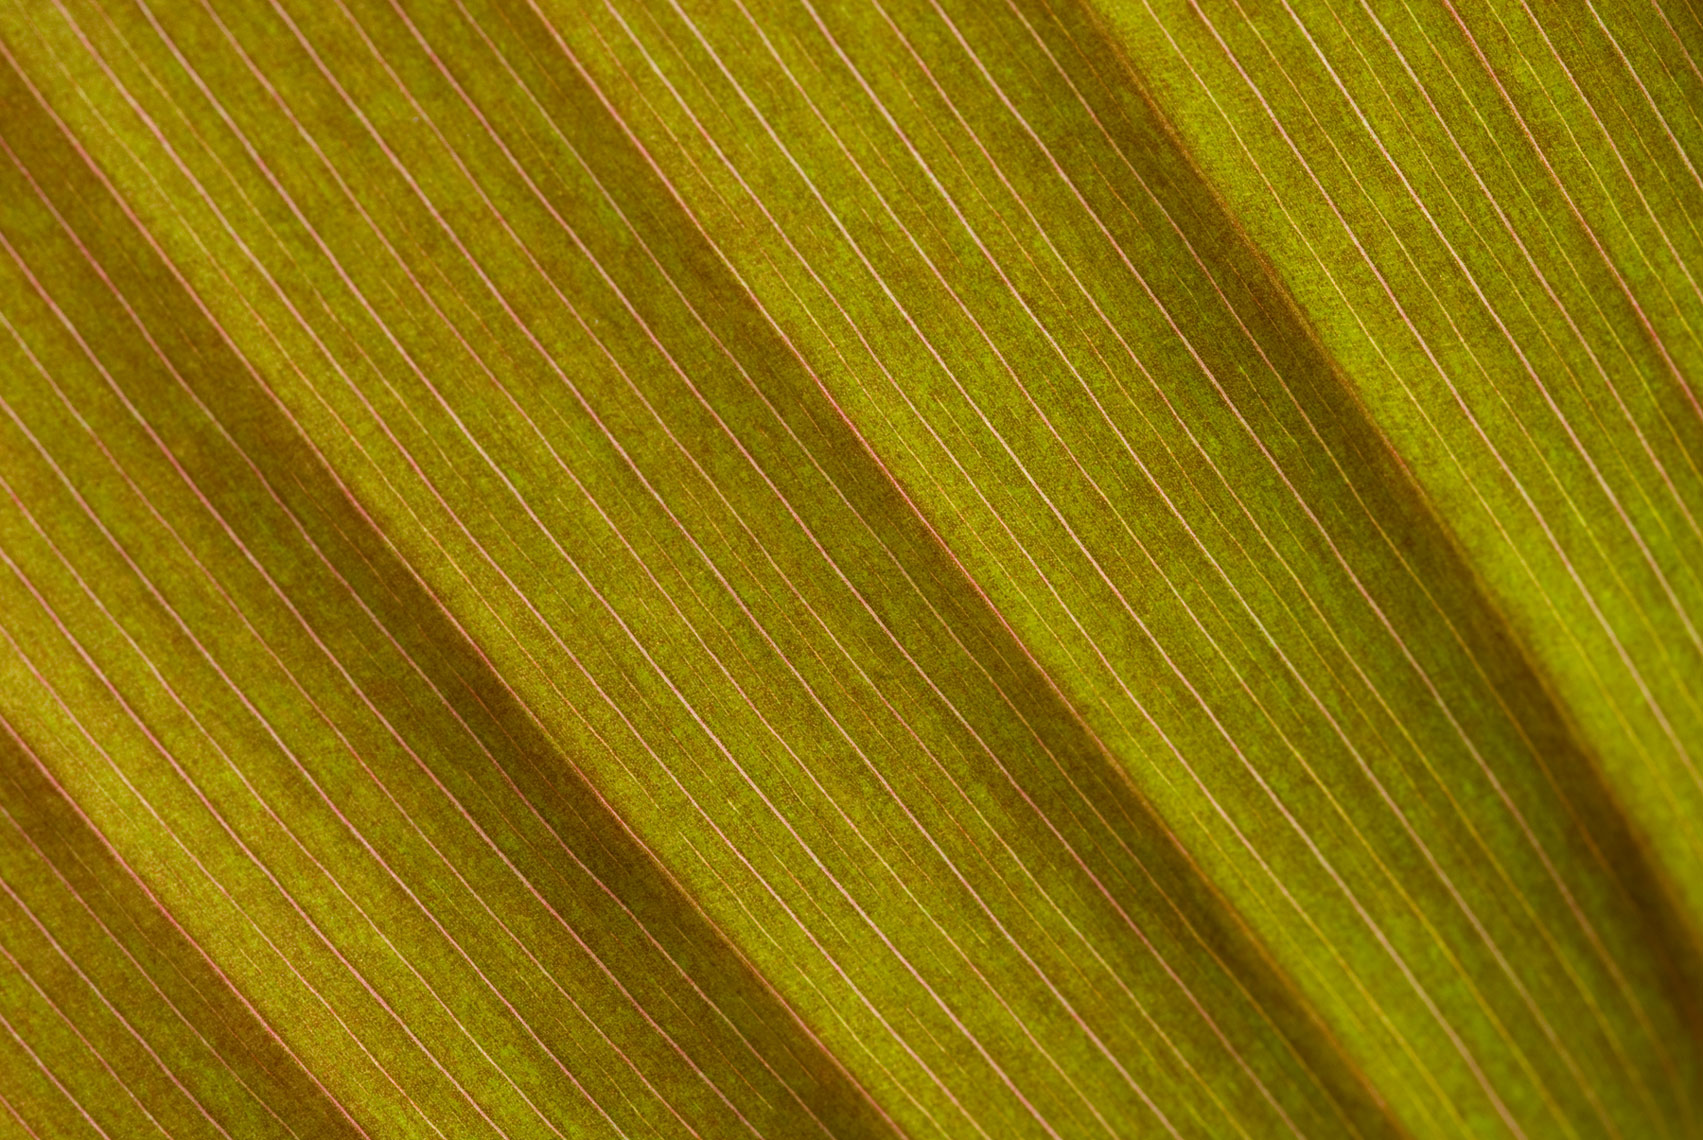 05-leaf_close_up